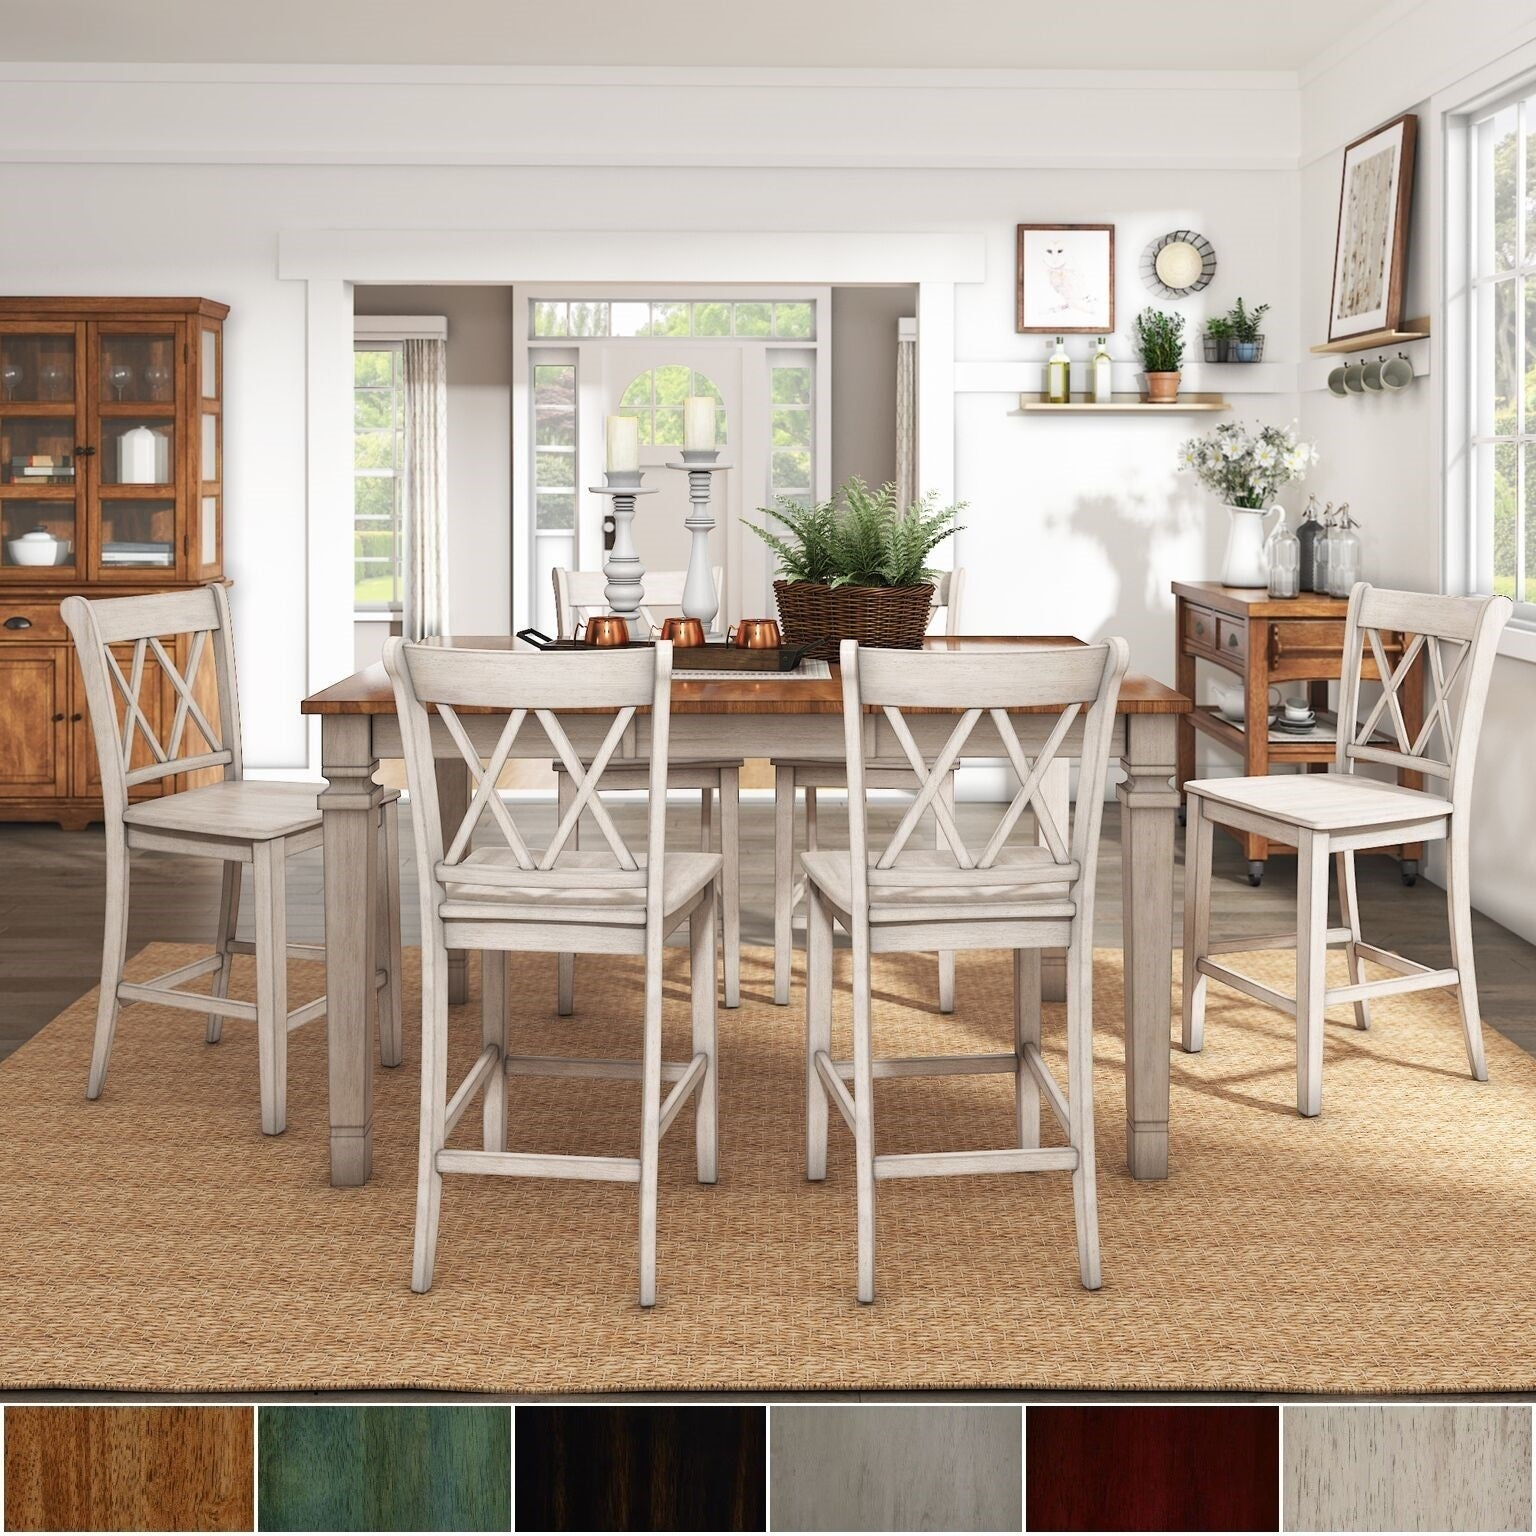 Shop Elena Antique White Extendable Counter Height Dining Set